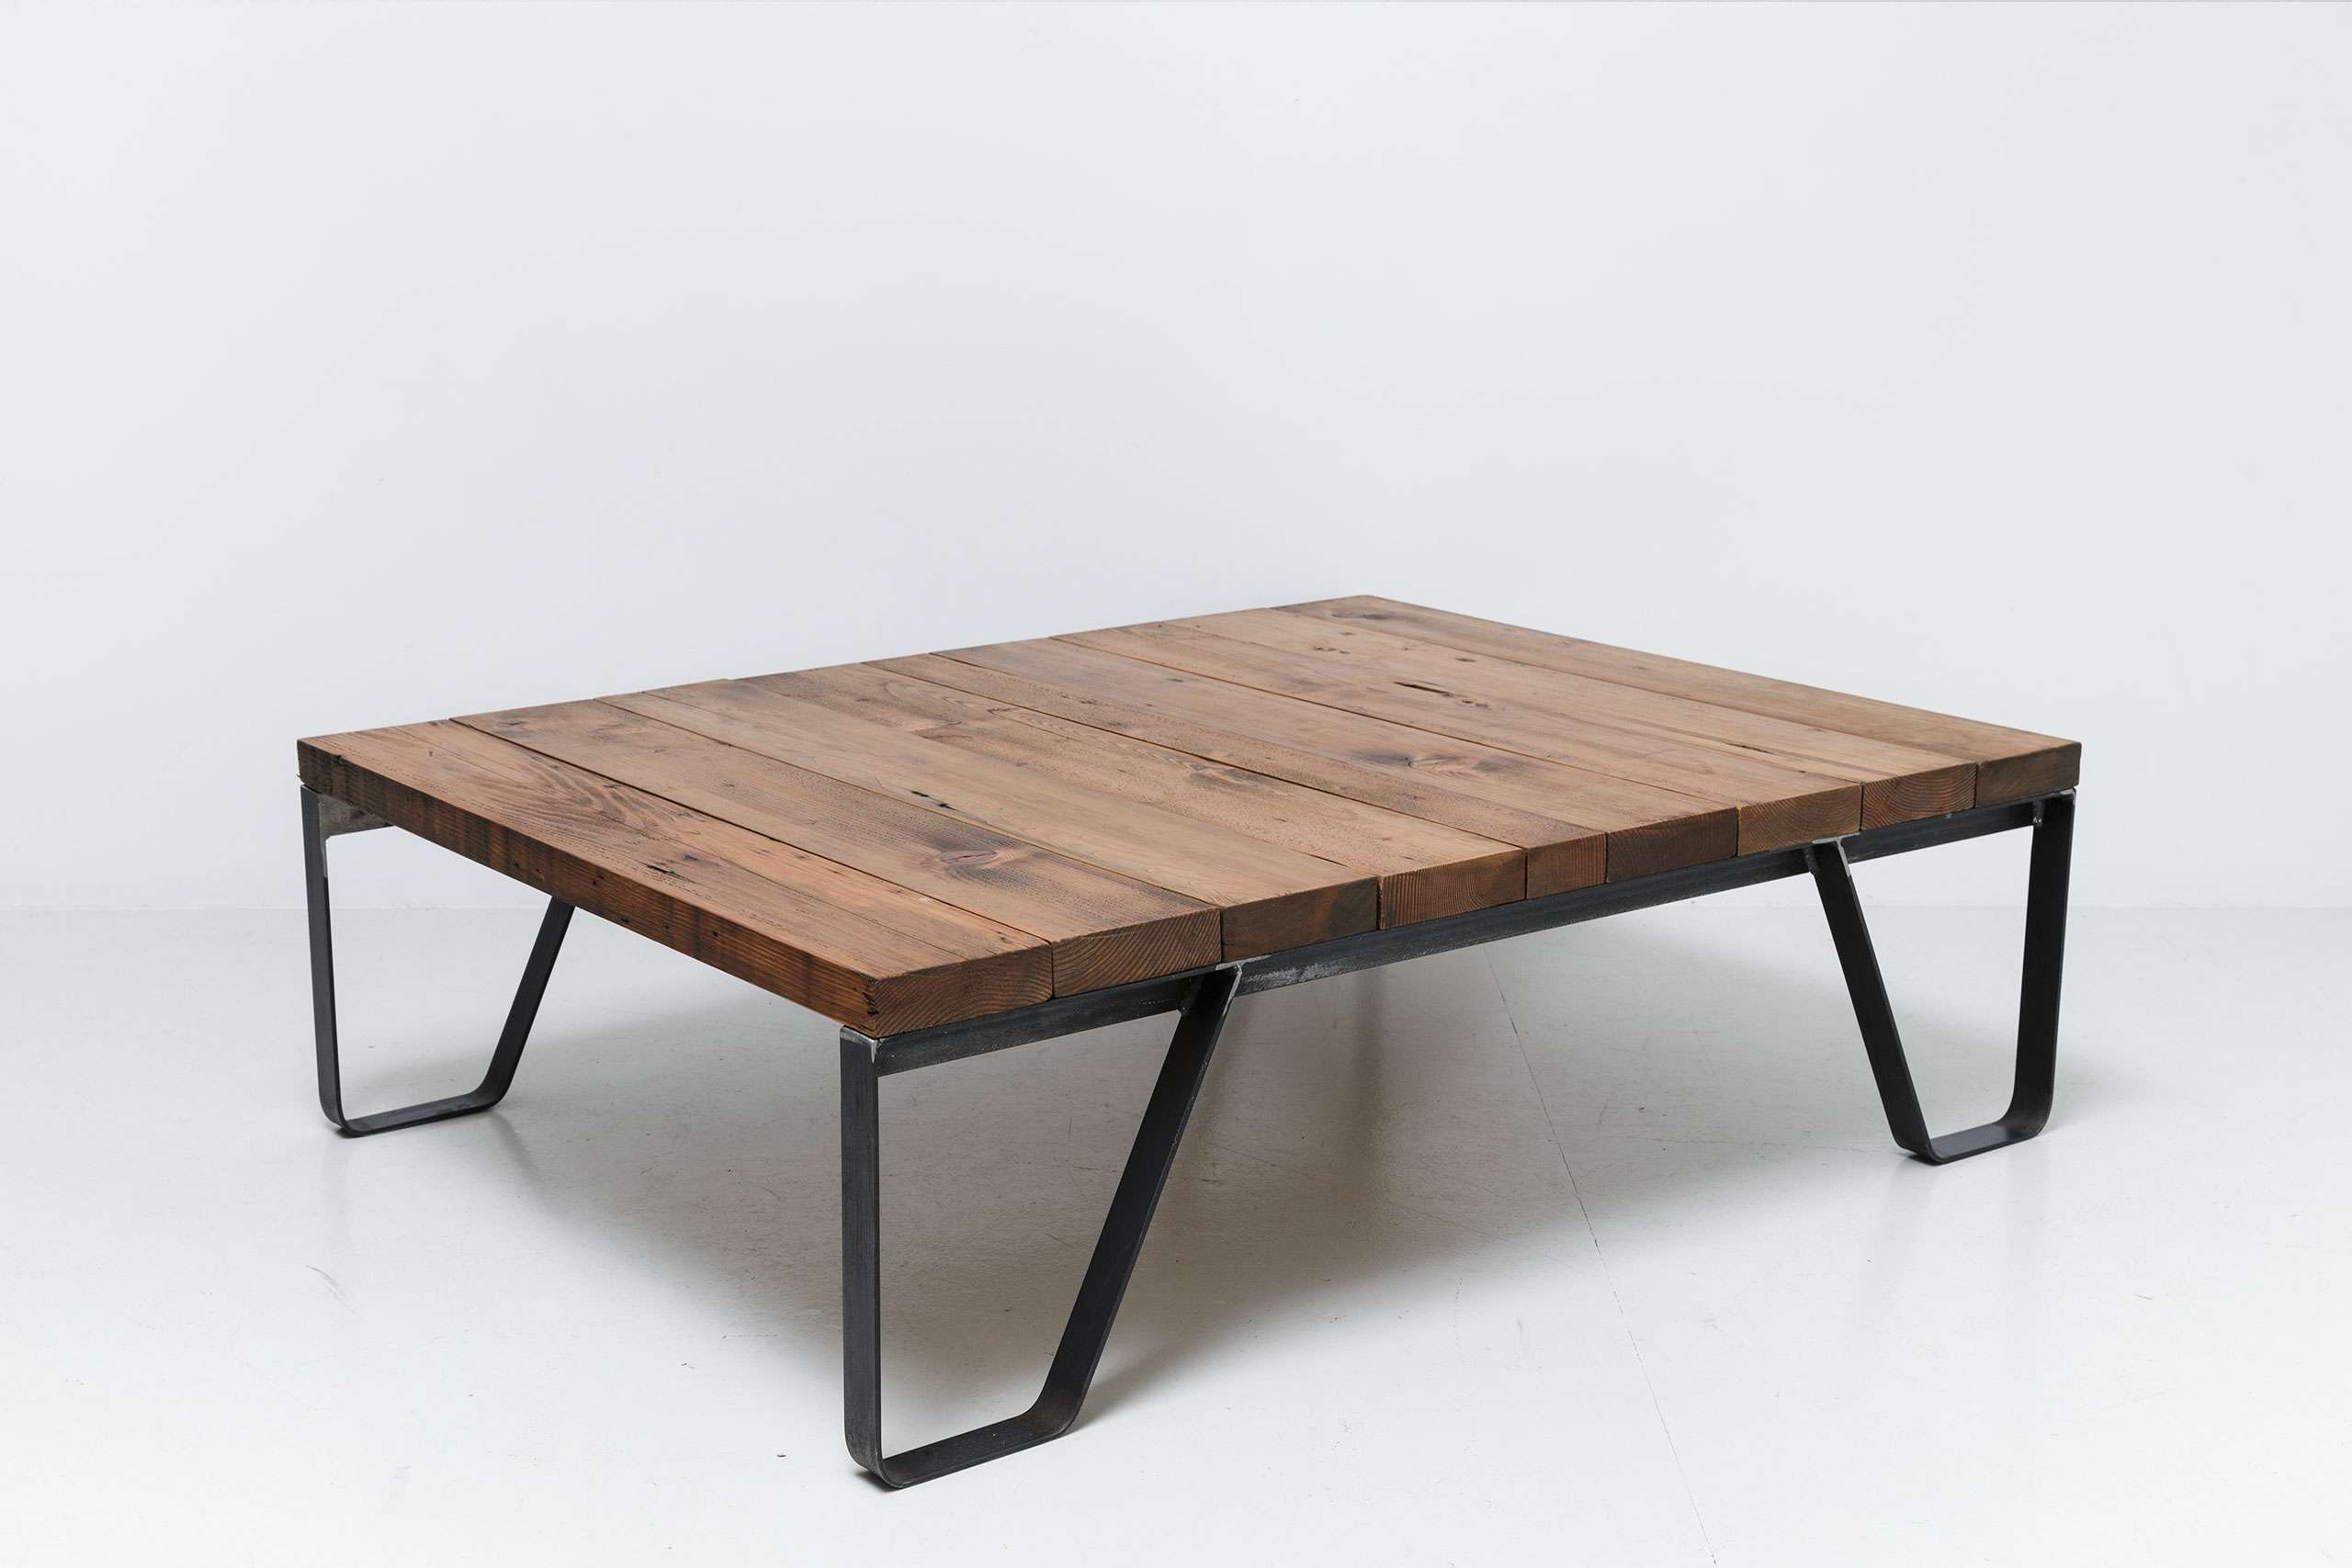 Coffee Table: Awesome Good Looking Industrial Coffee Tables Design Throughout Current Industrial Round Coffee Tables (View 19 of 20)